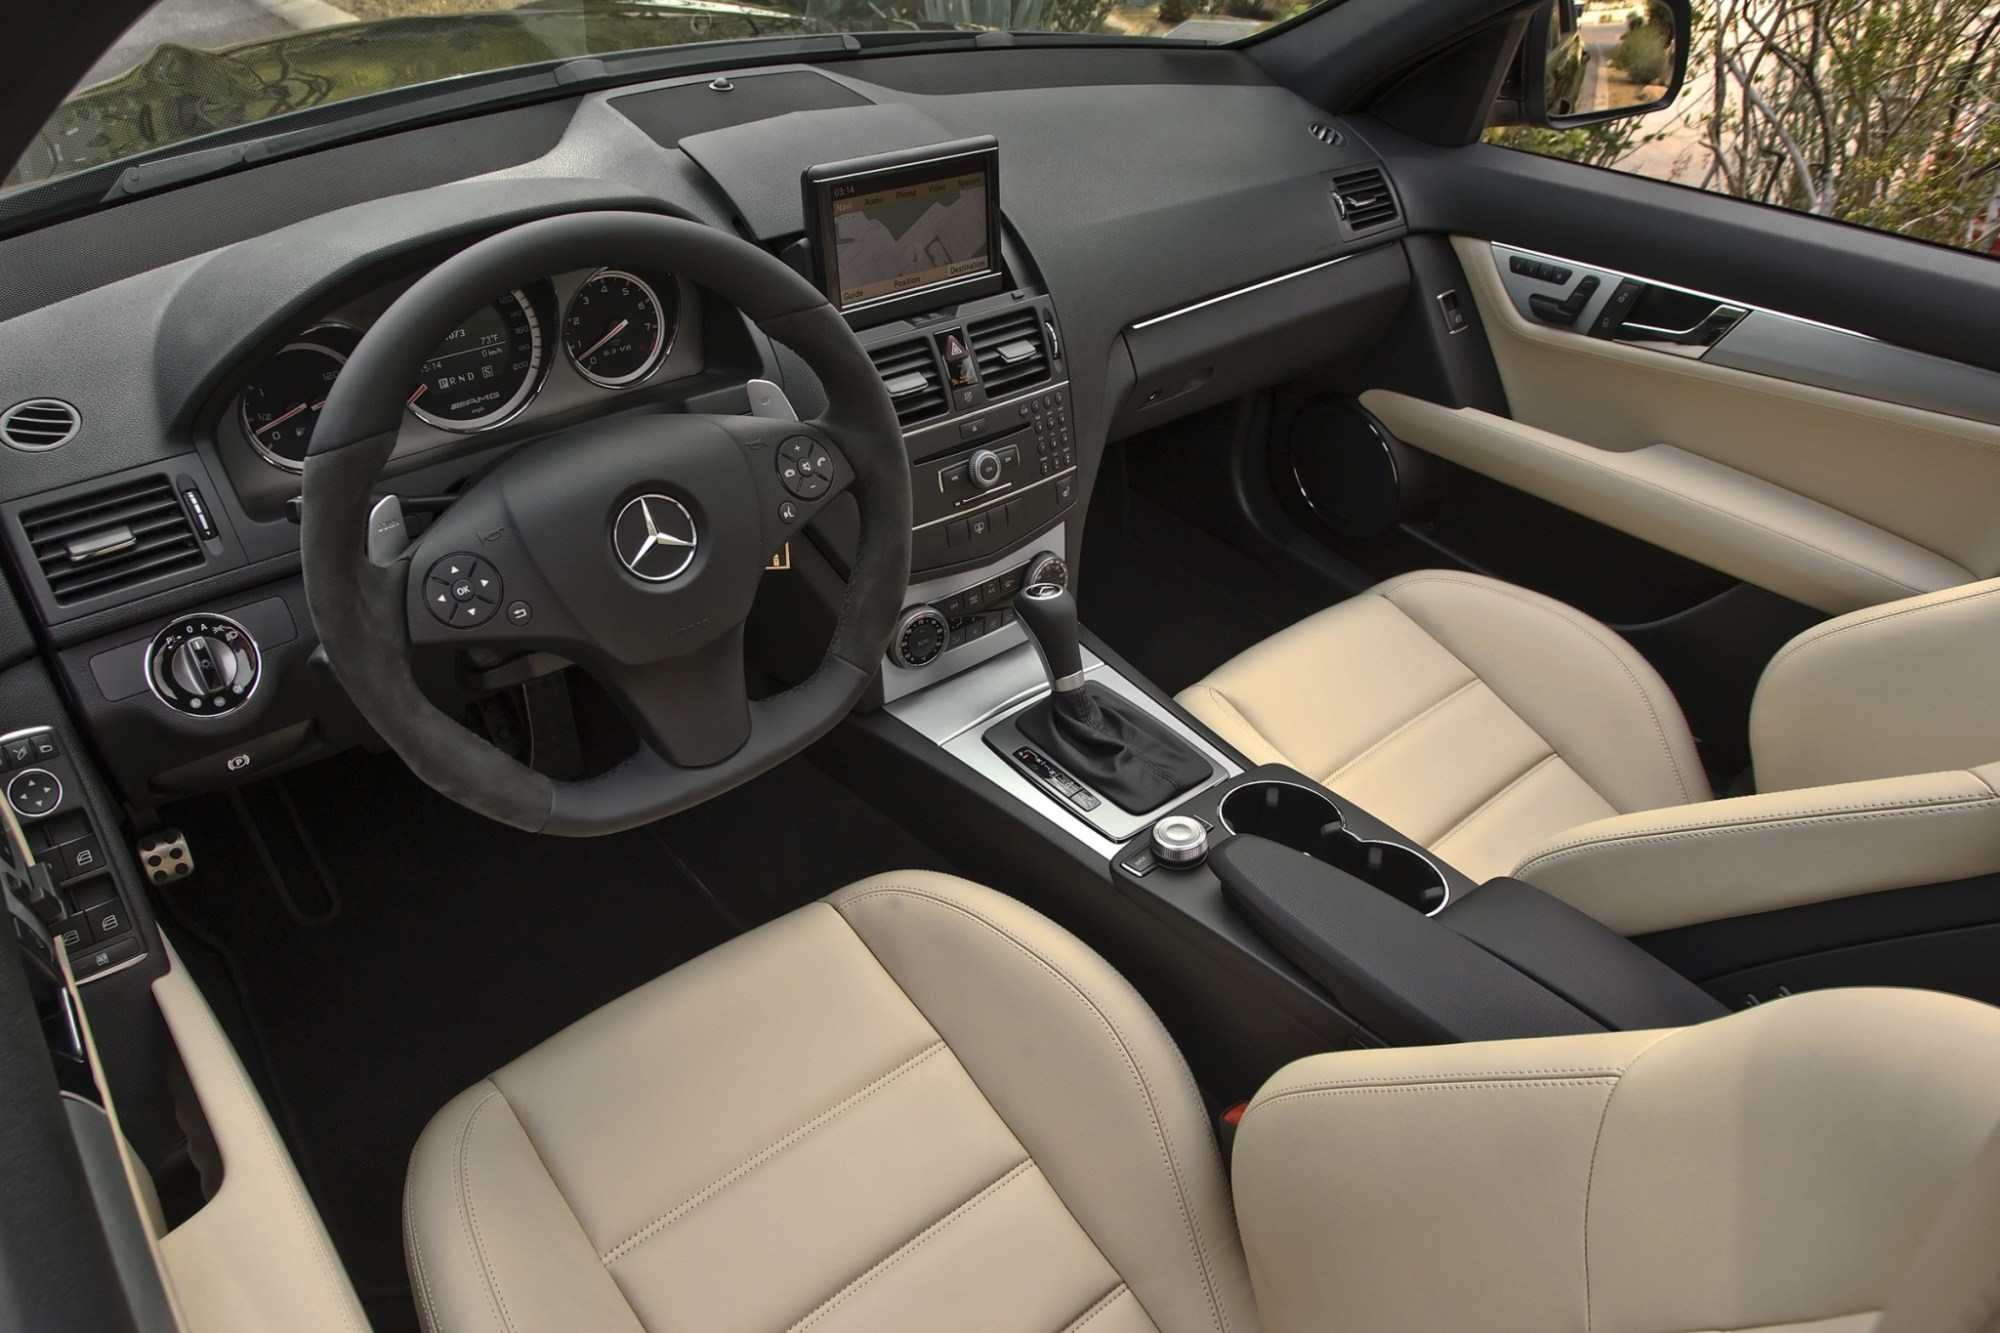 hight resolution of  2010 mercedes benz c class c300 4matic luxury sedan interior